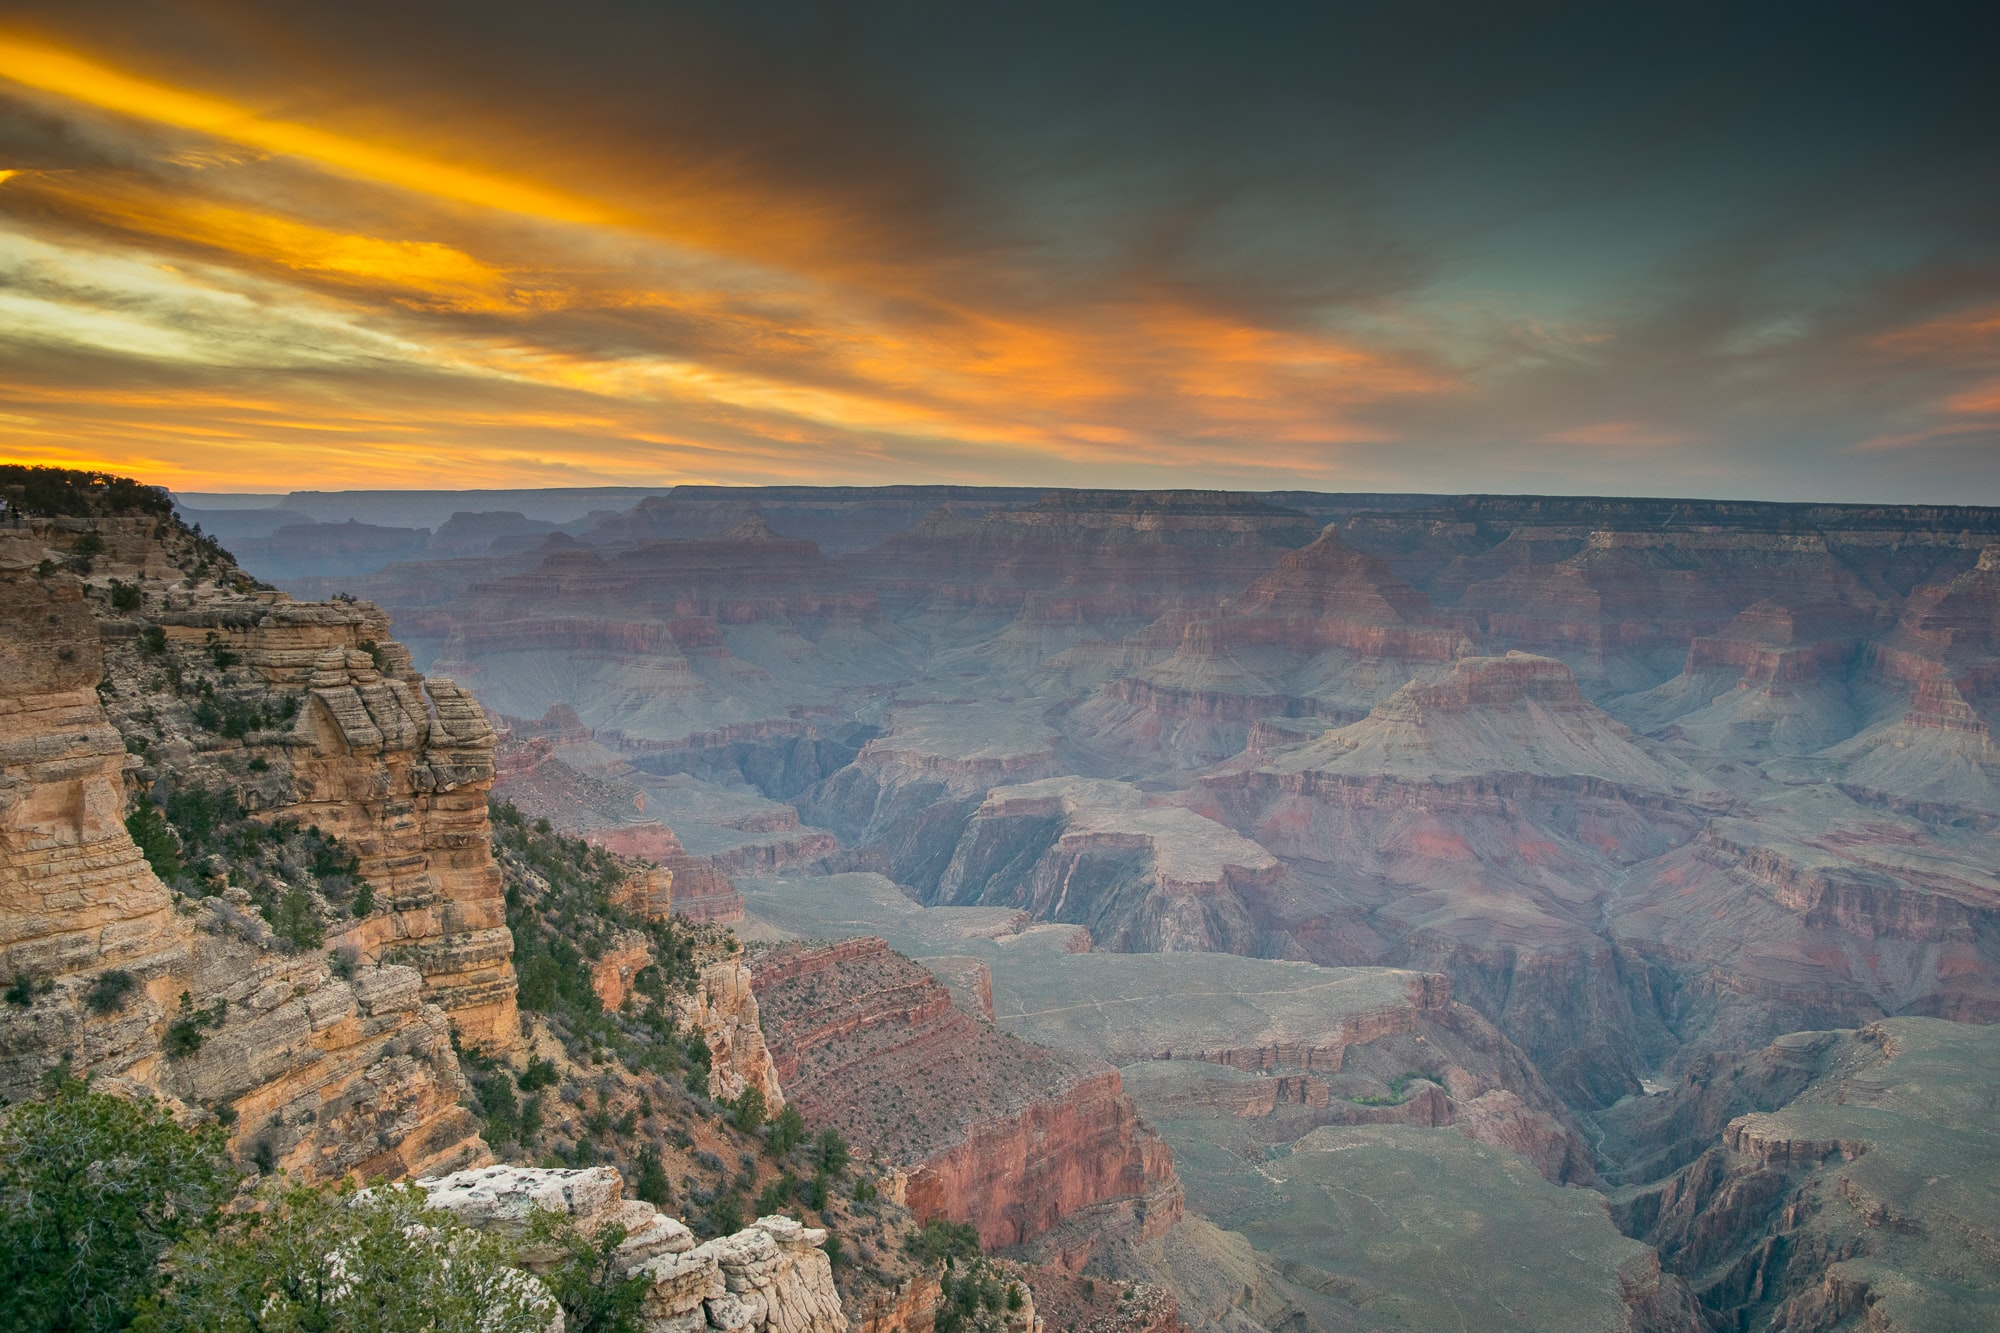 A monumental landscape with a vast canyon under the evening sky